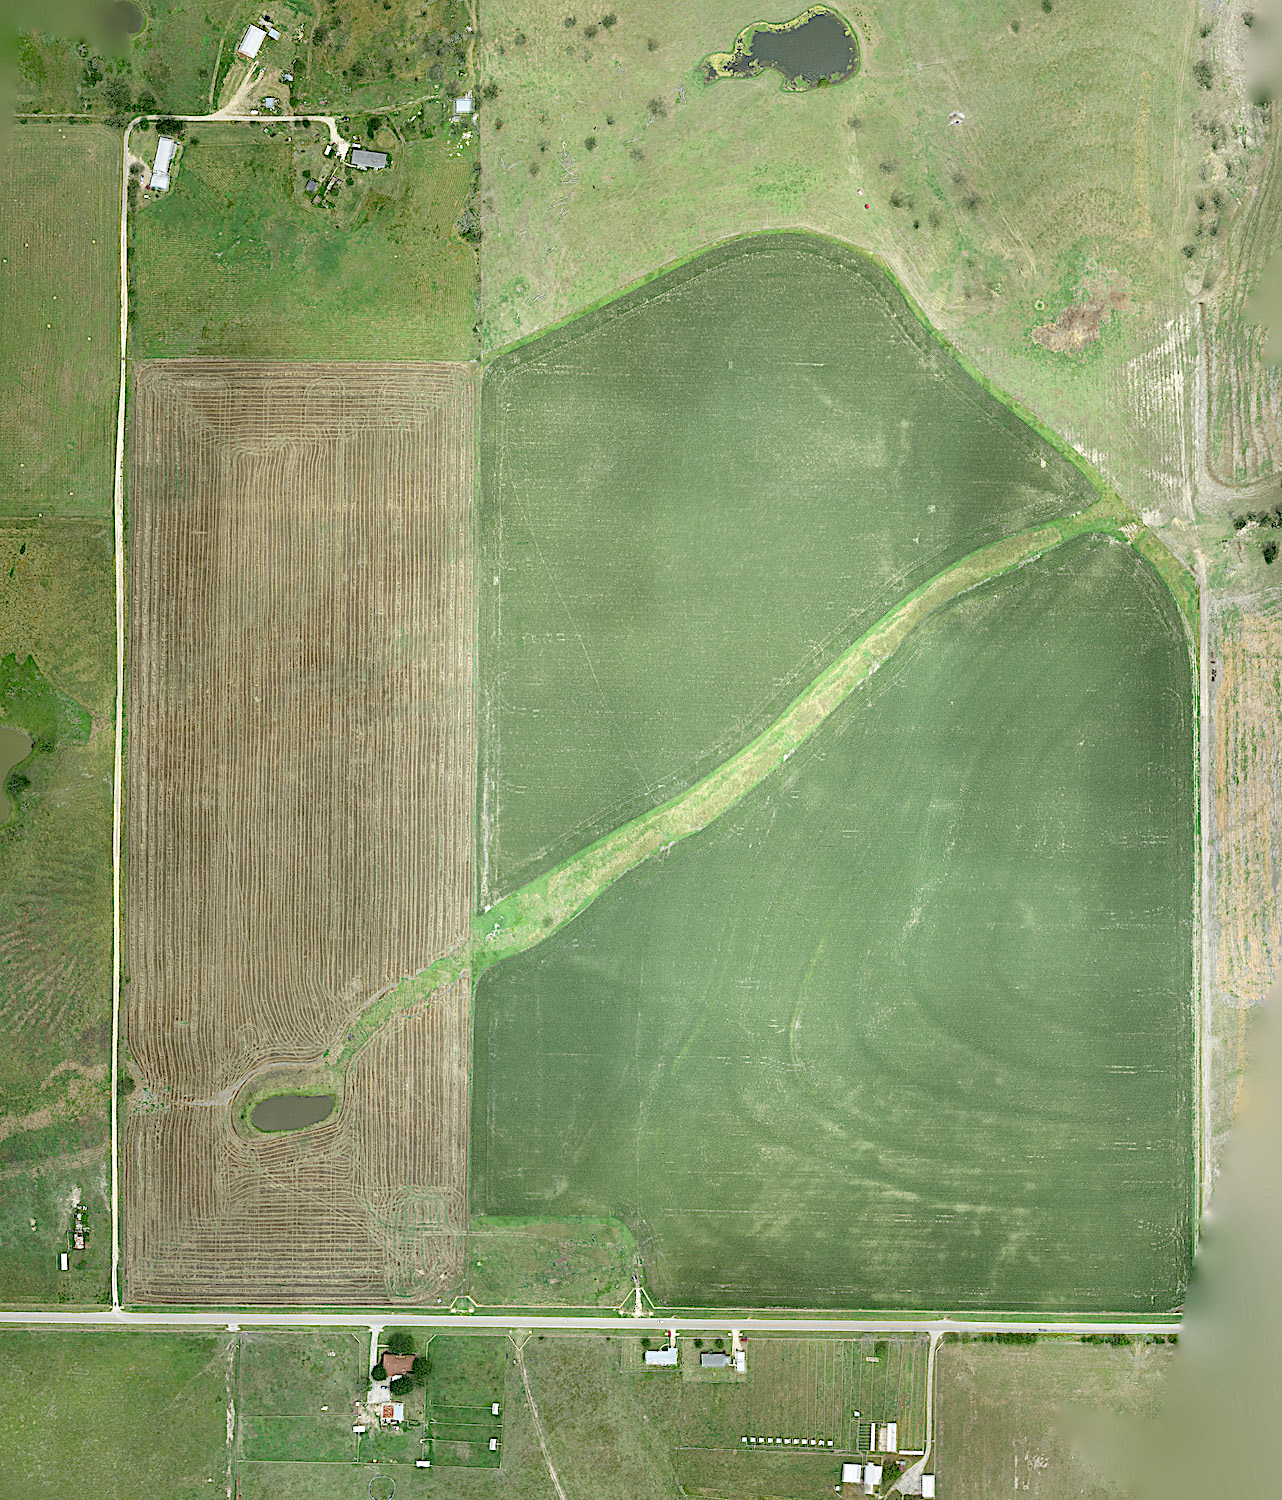 Orthomap of a corn field and surroundings